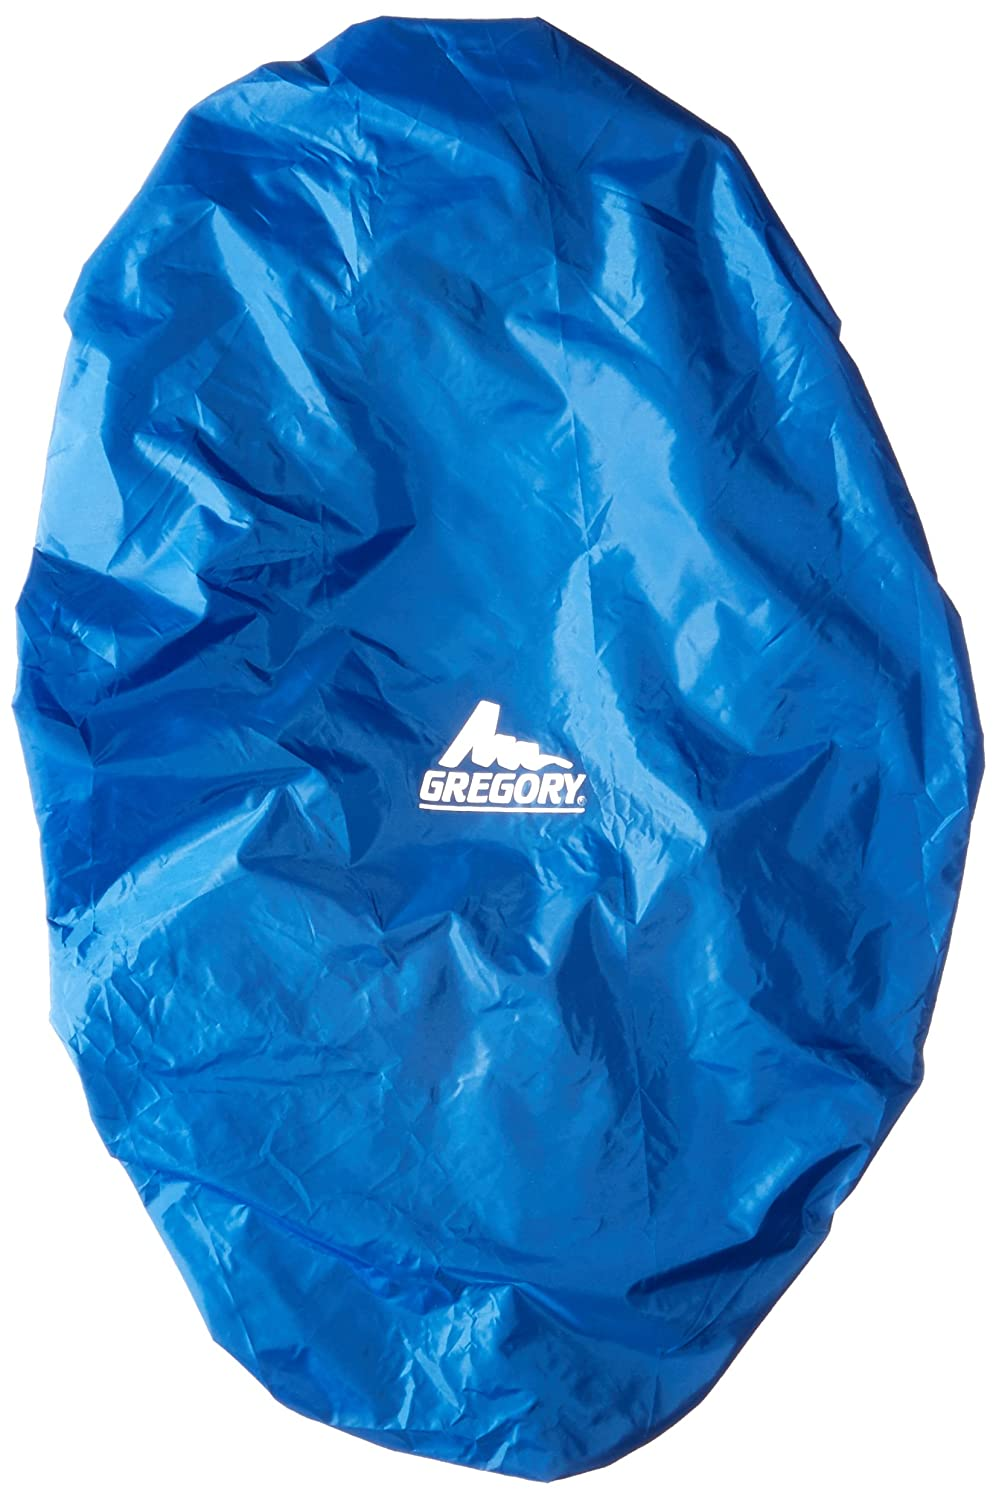 Gregory Accessories Raincover